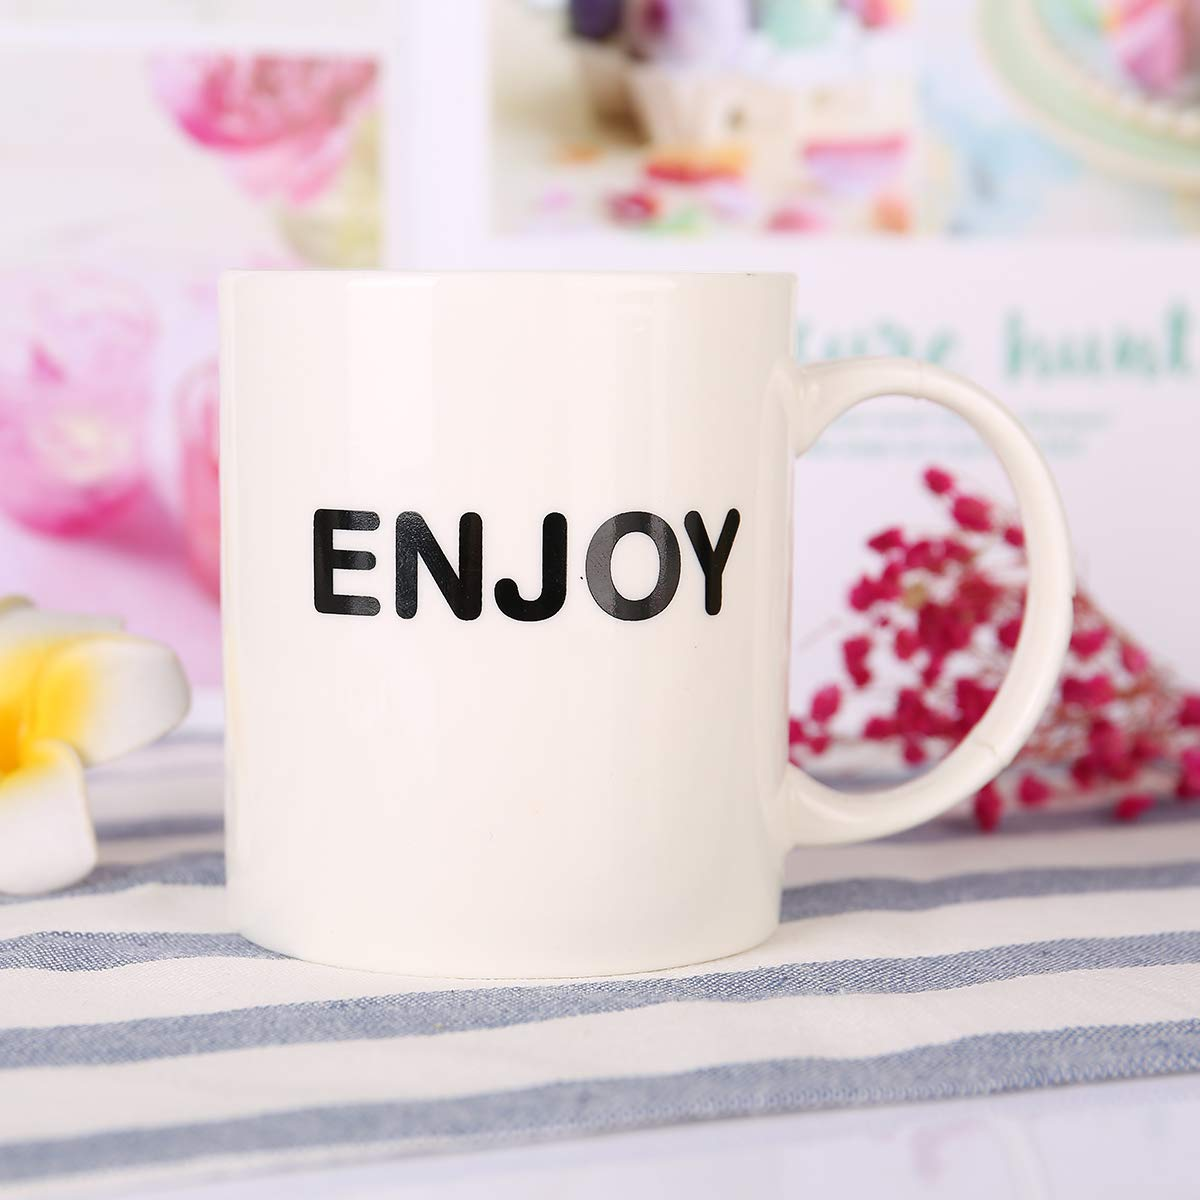 HANHAOPEAK Coffee Mug, 11oz Funny Coffee Mug: Enjoy, Unique Ceramic Novelty Holiday Christmas Hanukkah Gift for Men and Women Who Love Tea Mugs Coffee Cups, Suitable for Office and Home by HANHAOPEAK (Image #6)